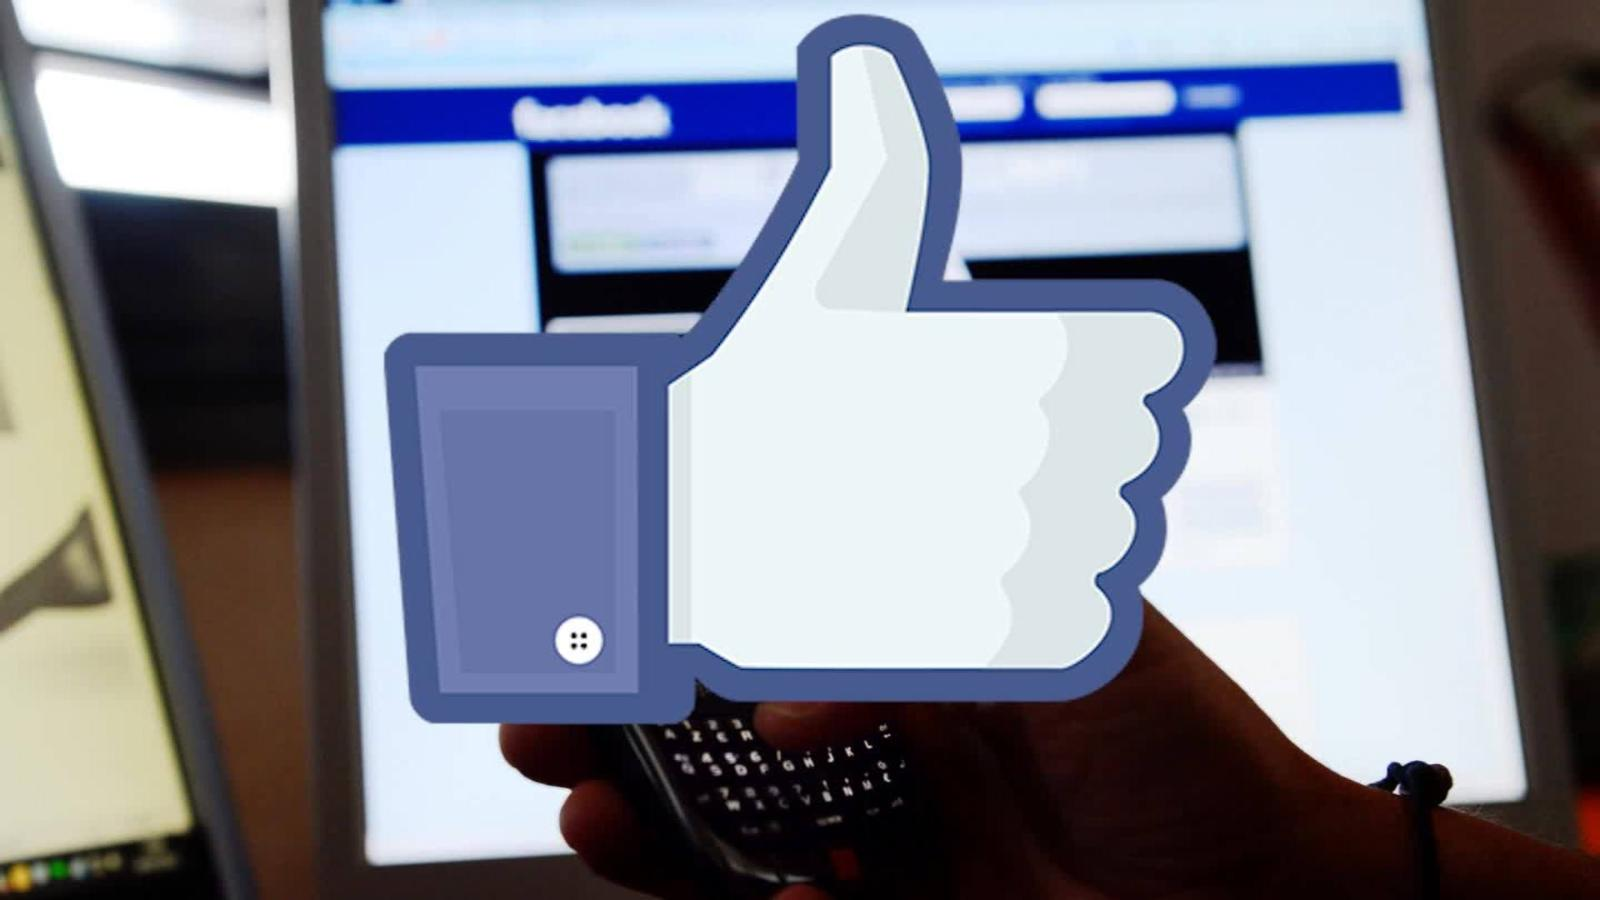 Facebook Likes Offer A Way To Analyze Your Personality